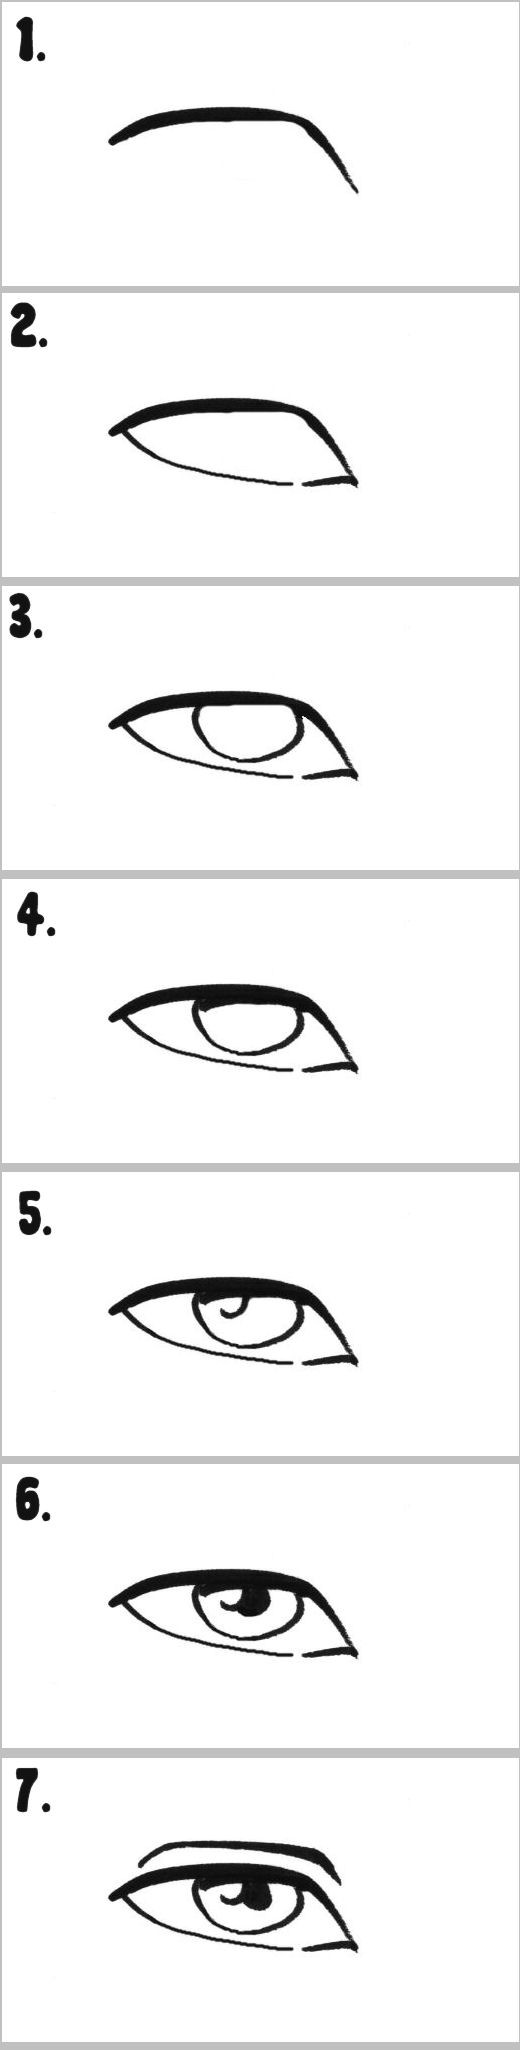 A seven-step breakdown on drawing the eye.